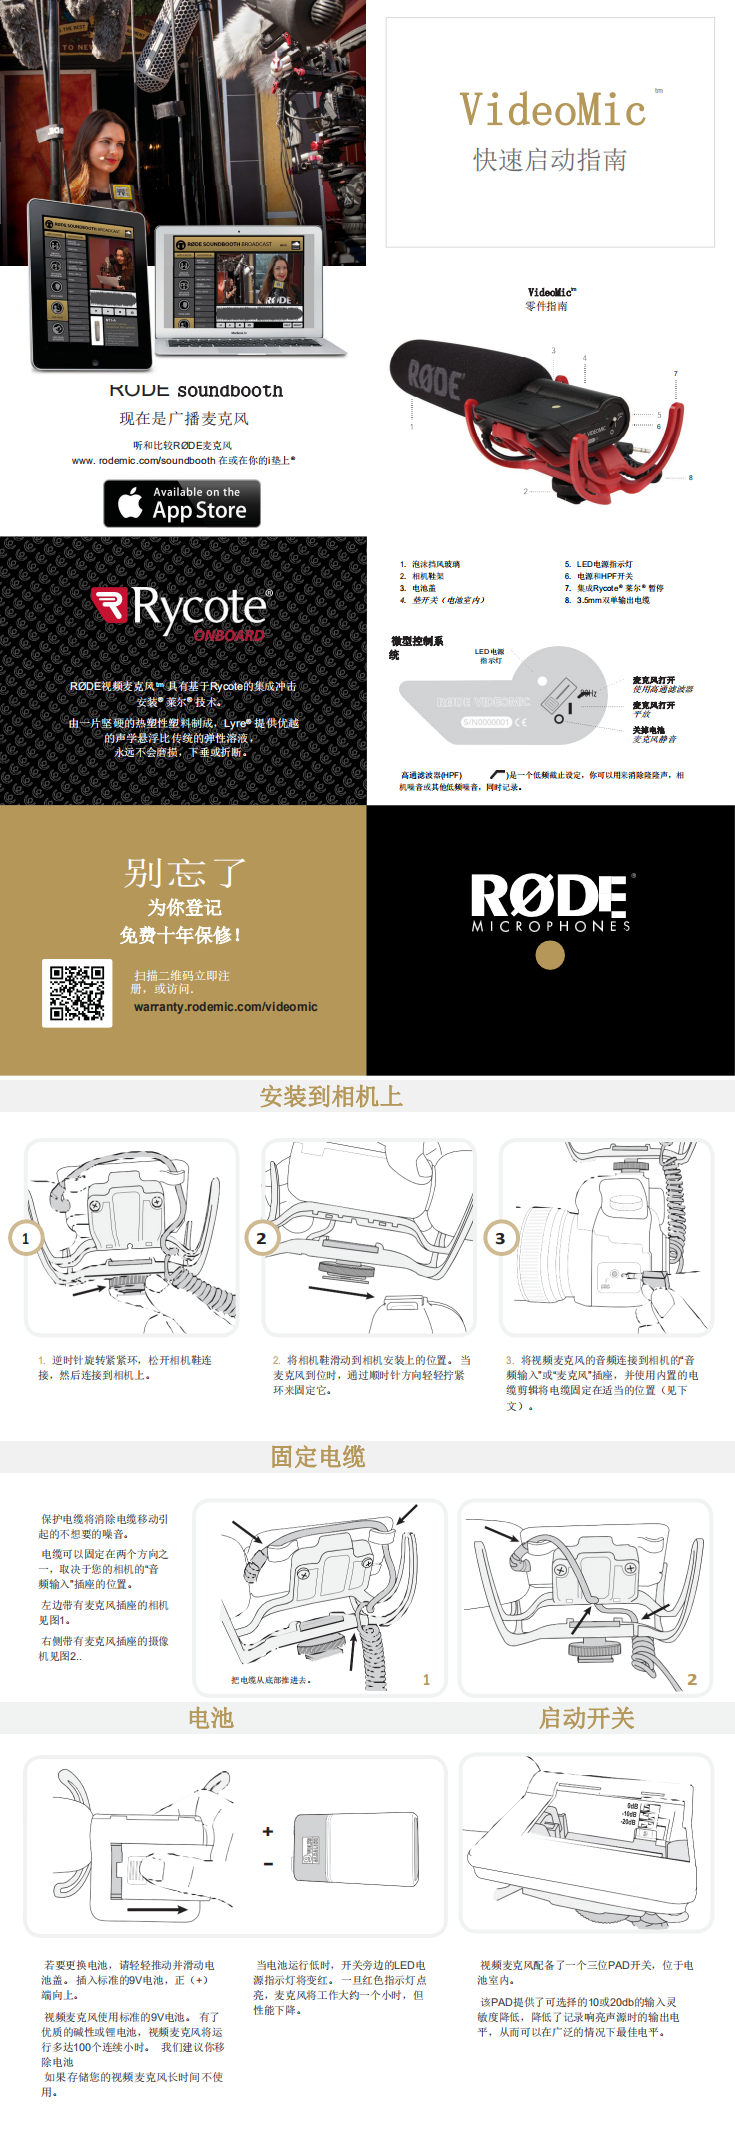 VideoMic_product_manual_1_2_translate_Chinese_0.png